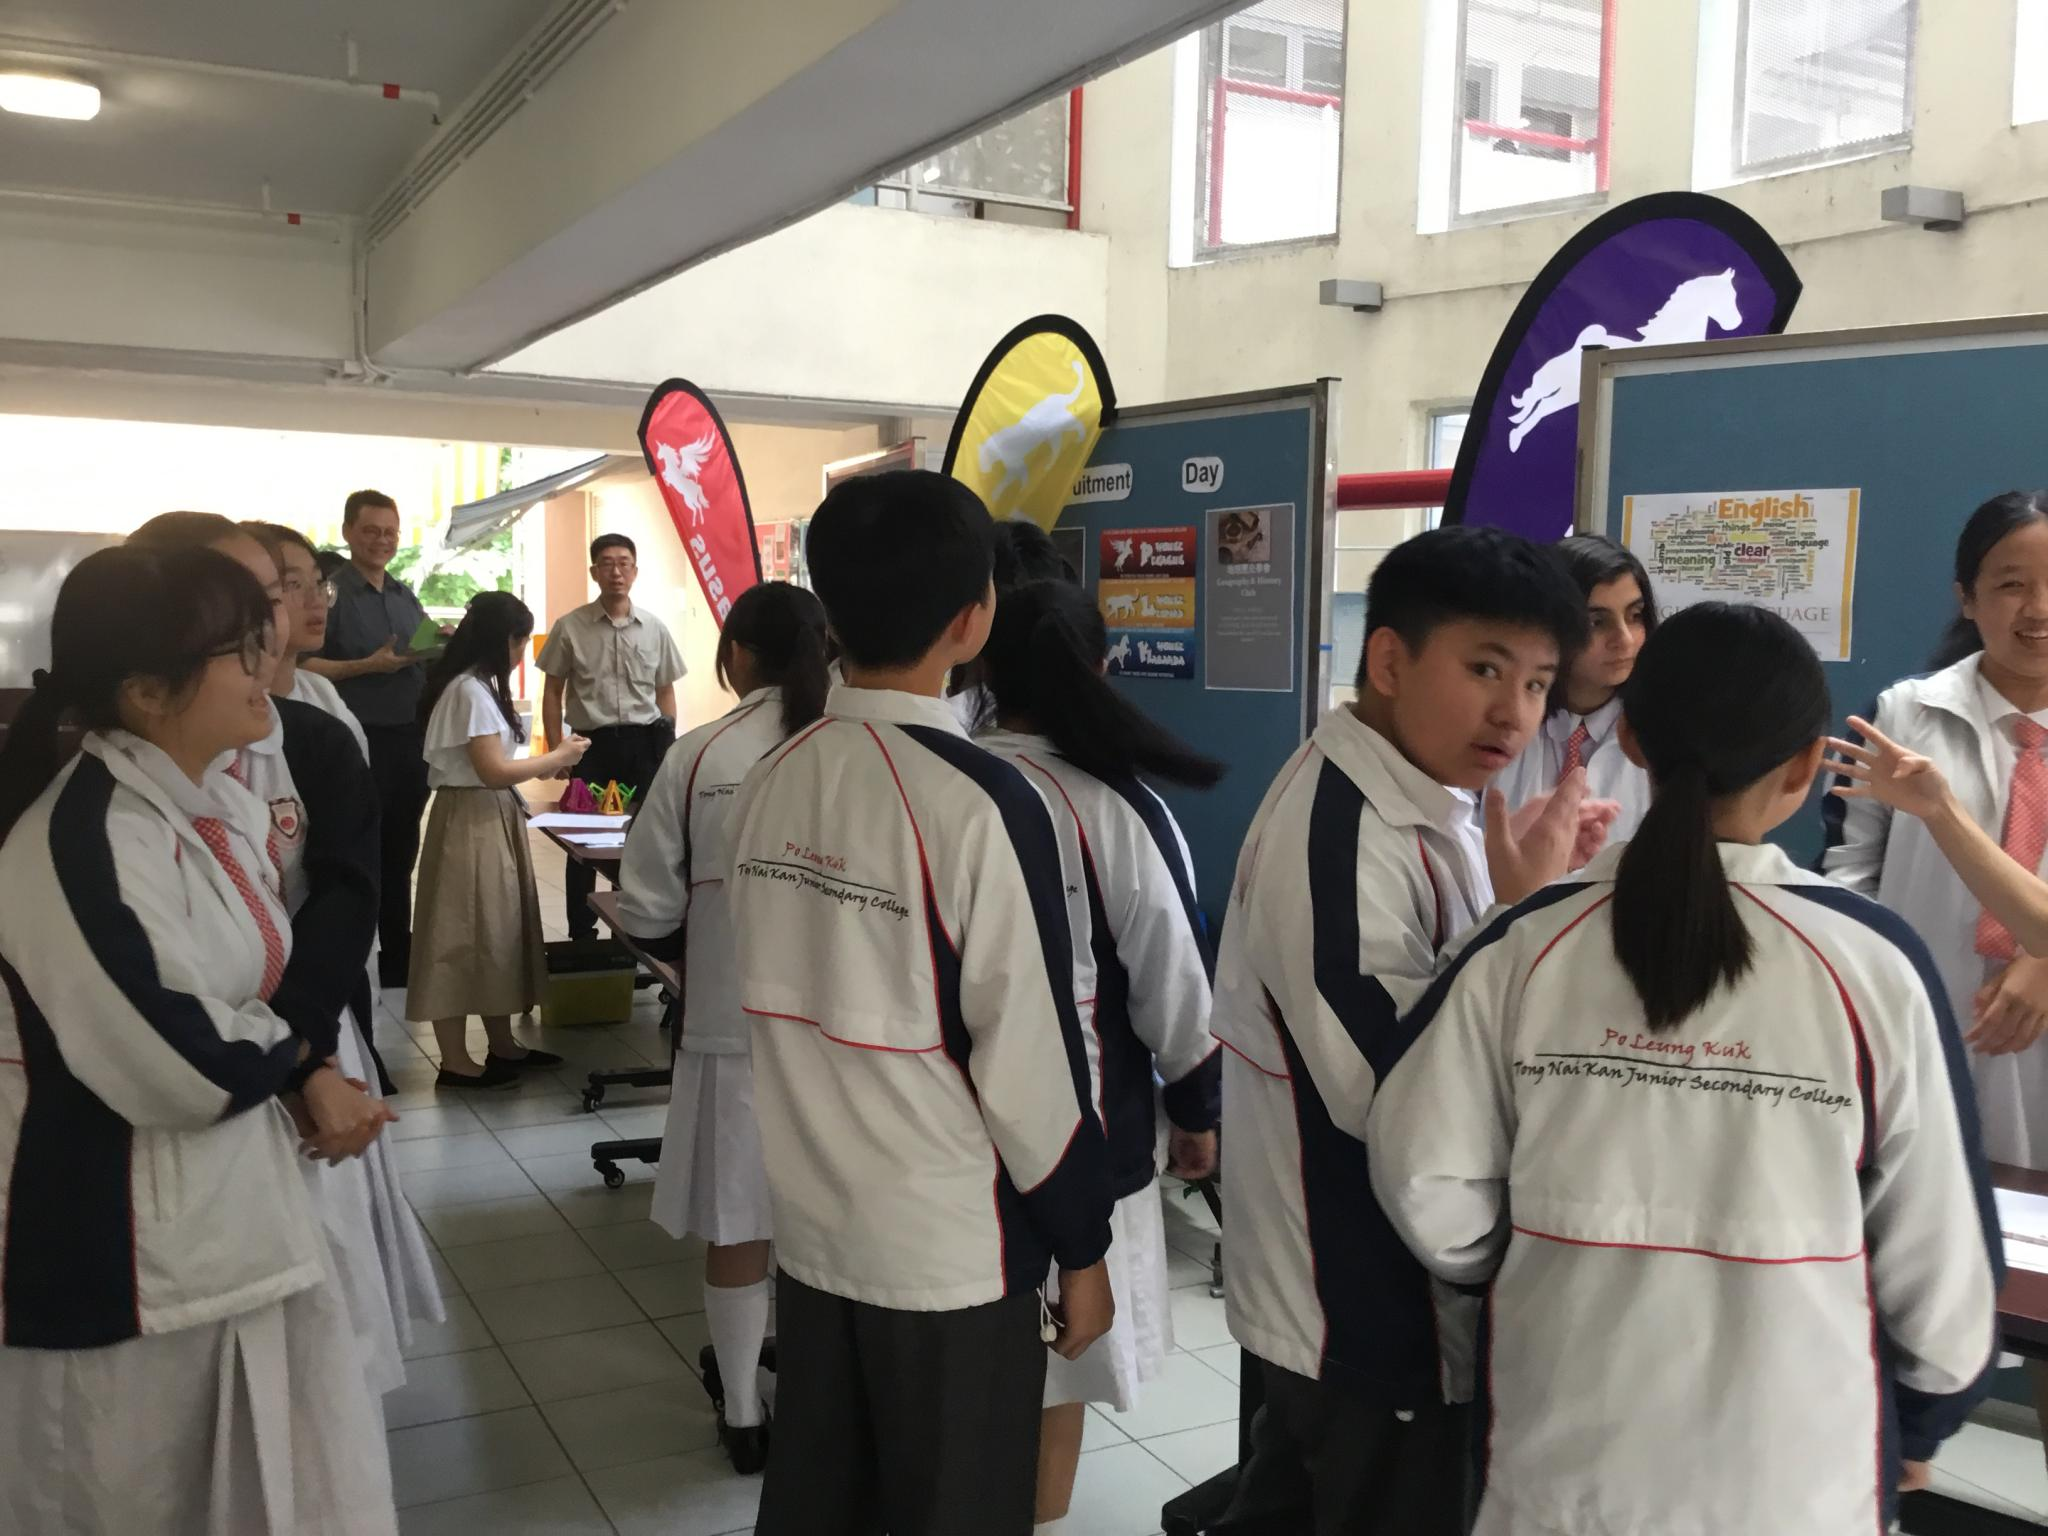 Students were enrolling different academic clubs during the recess outside the school hall.